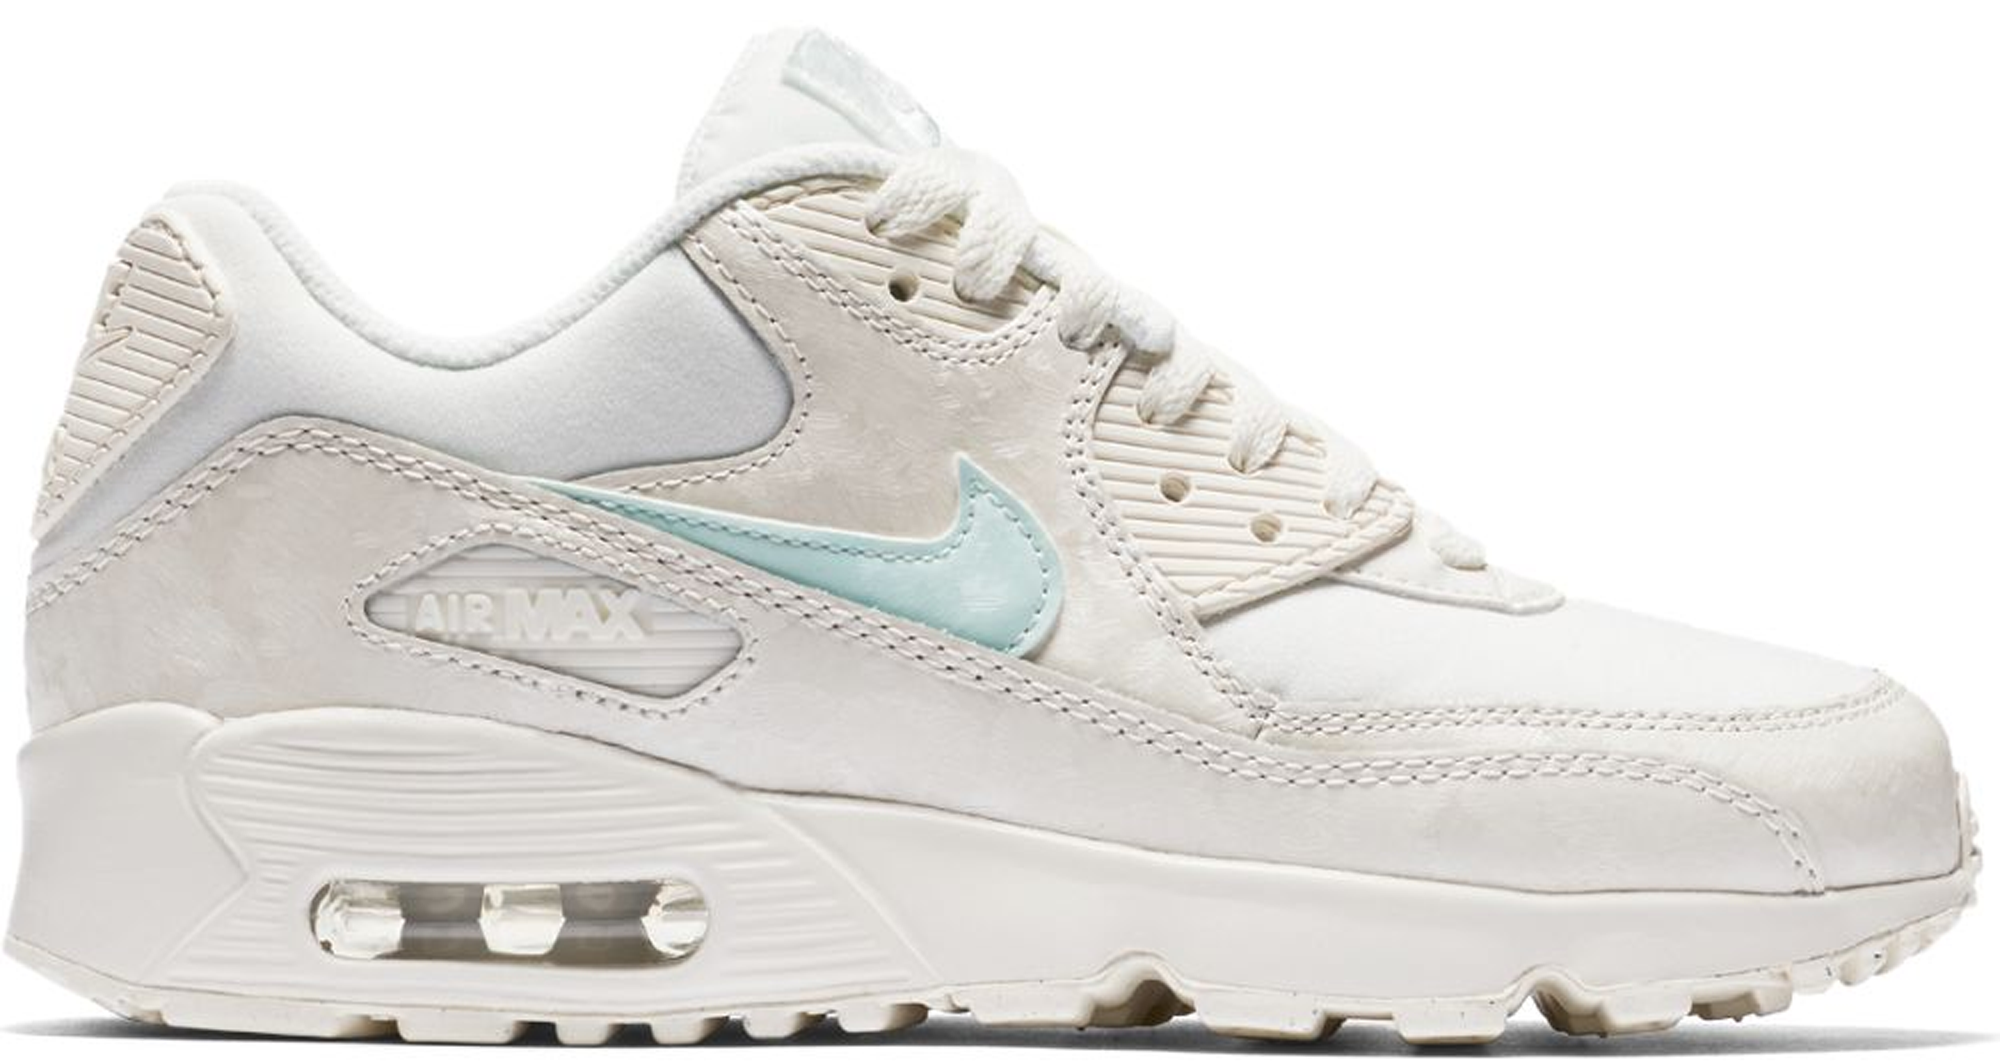 Air Max 90 Sail Igloo (GS)